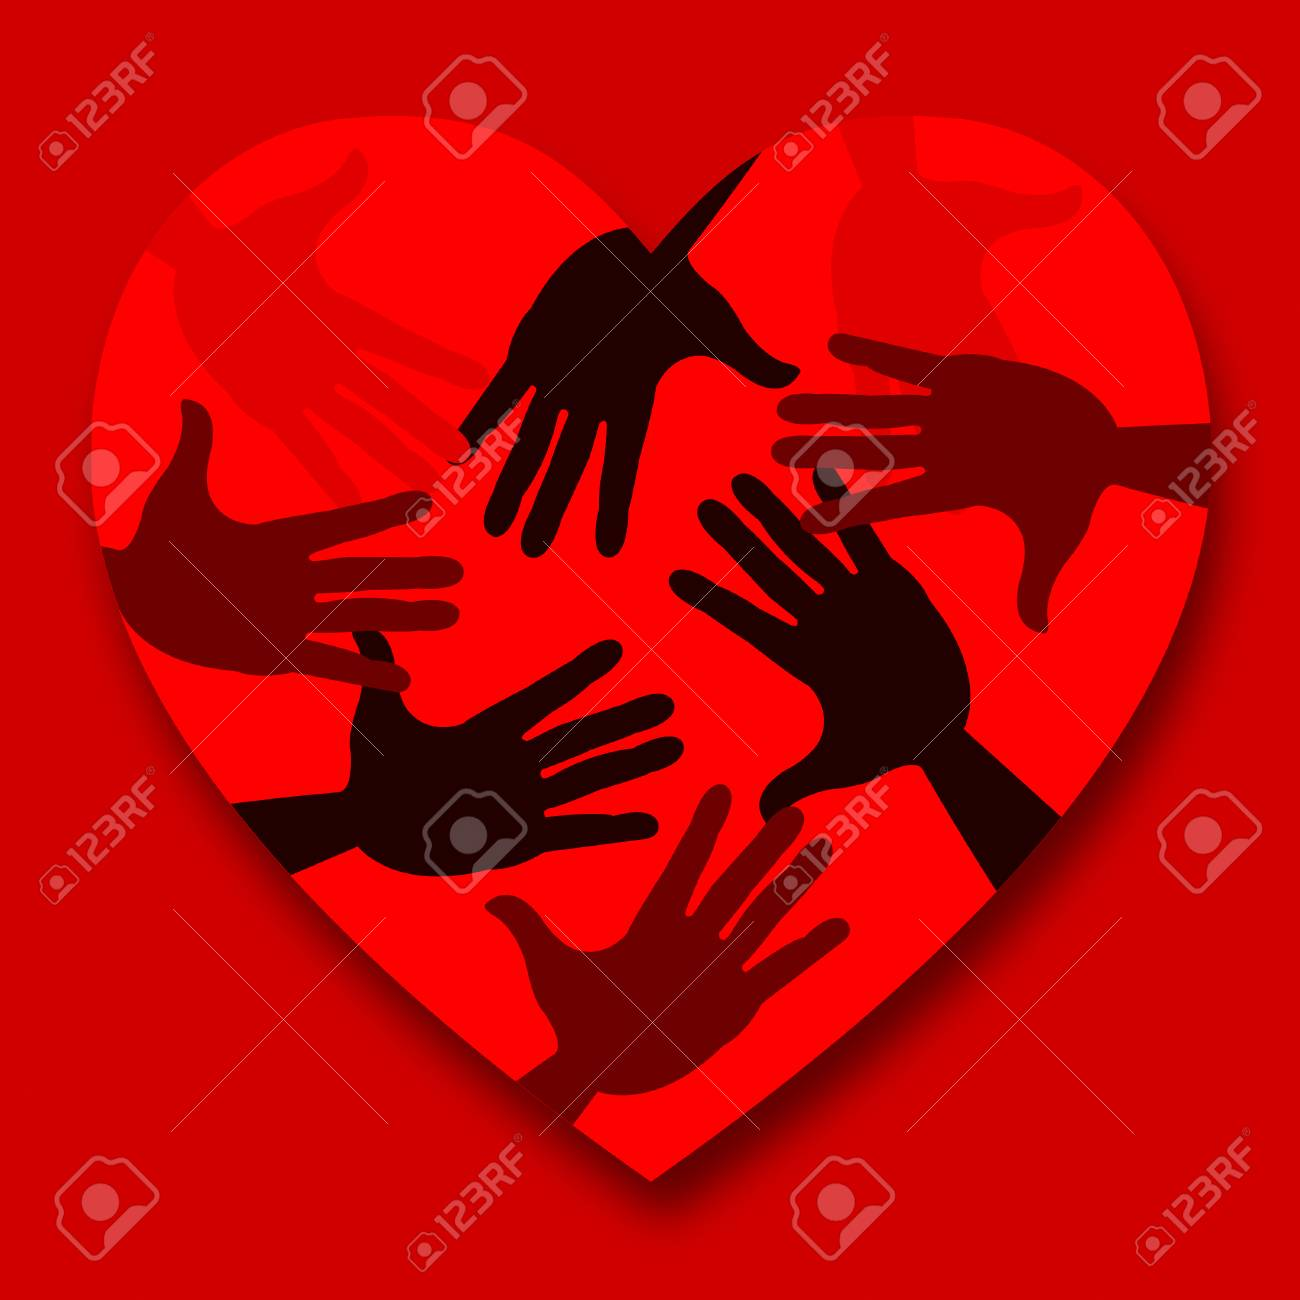 Heart Red Meaning Valentines Day And Lovers Stock Photo Picture And